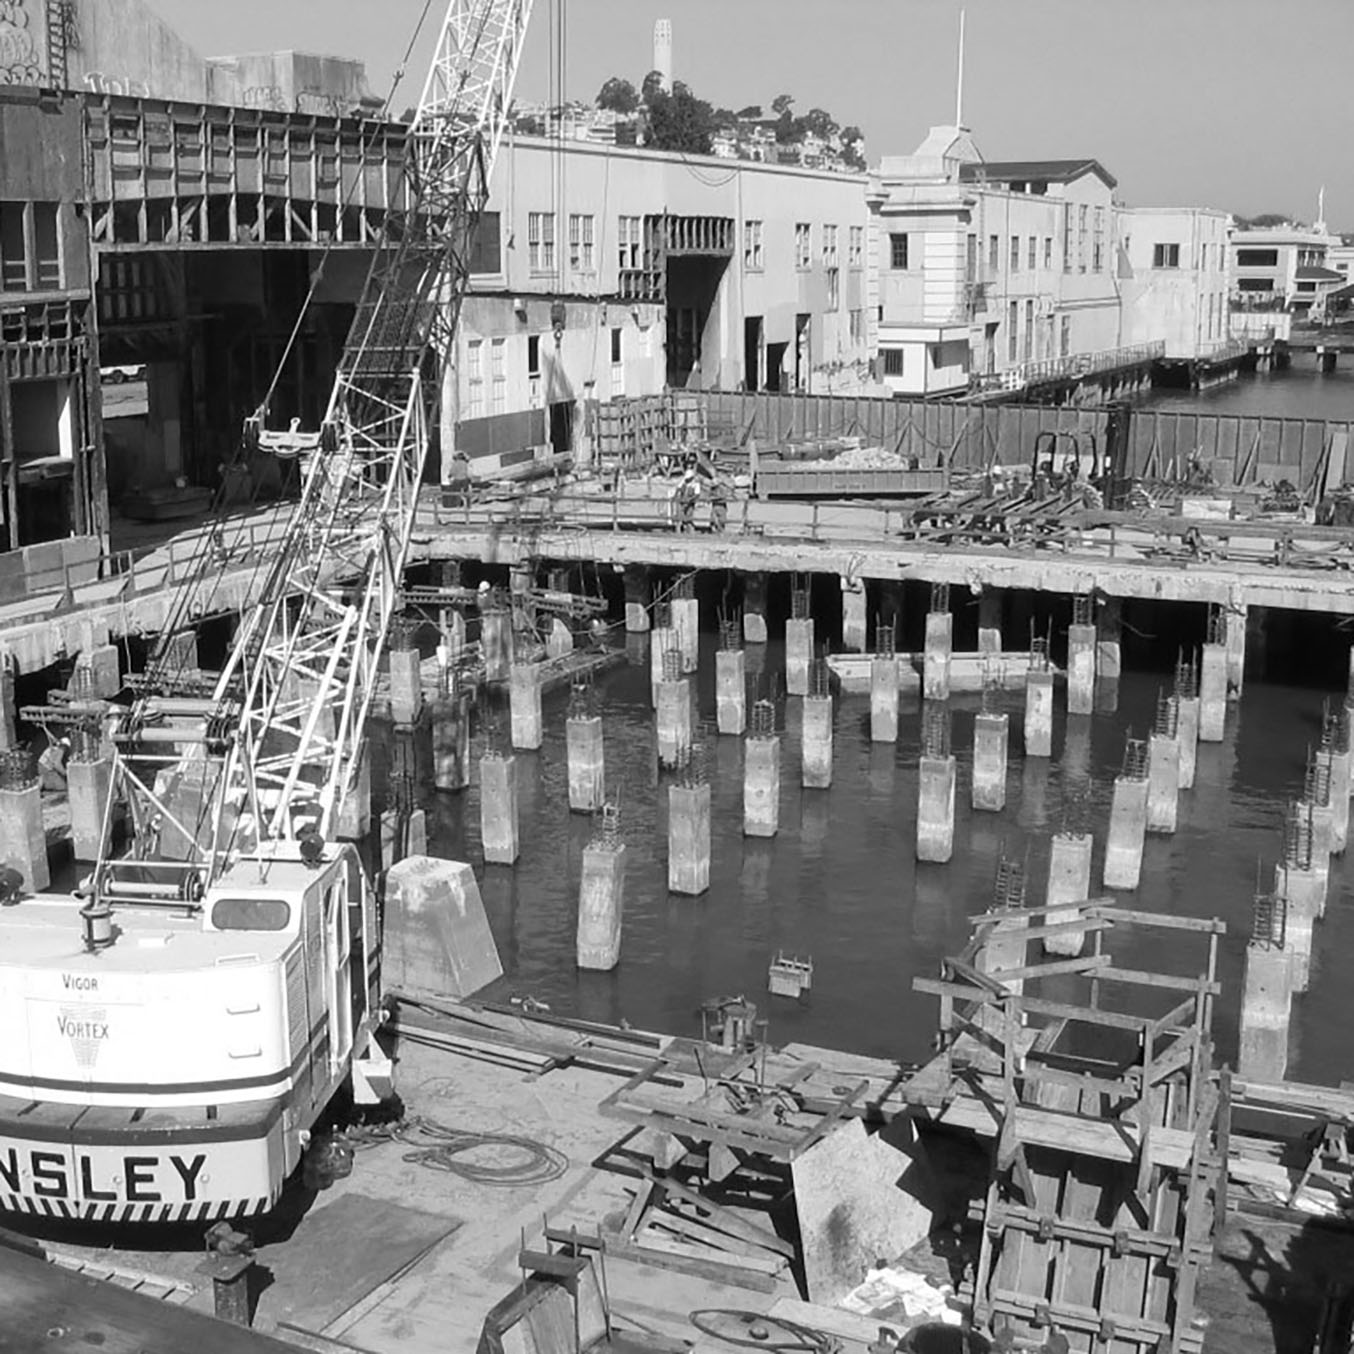 Piers 1.5, 3 & 5 construction